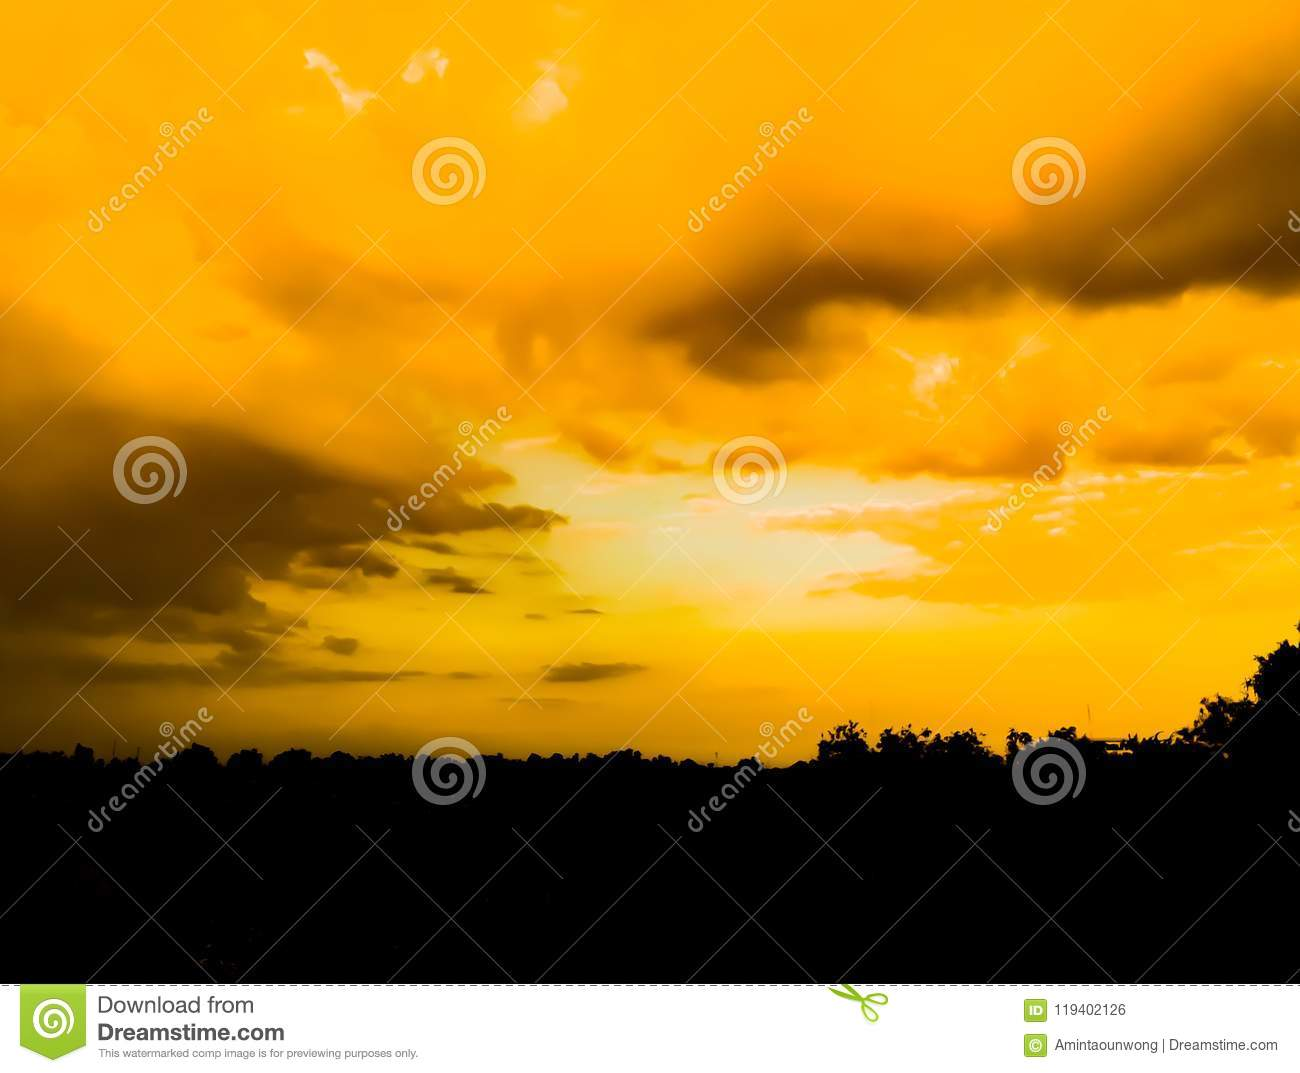 Sunrise And Sunset Mountain View Stock Photo Image Of Outdoor